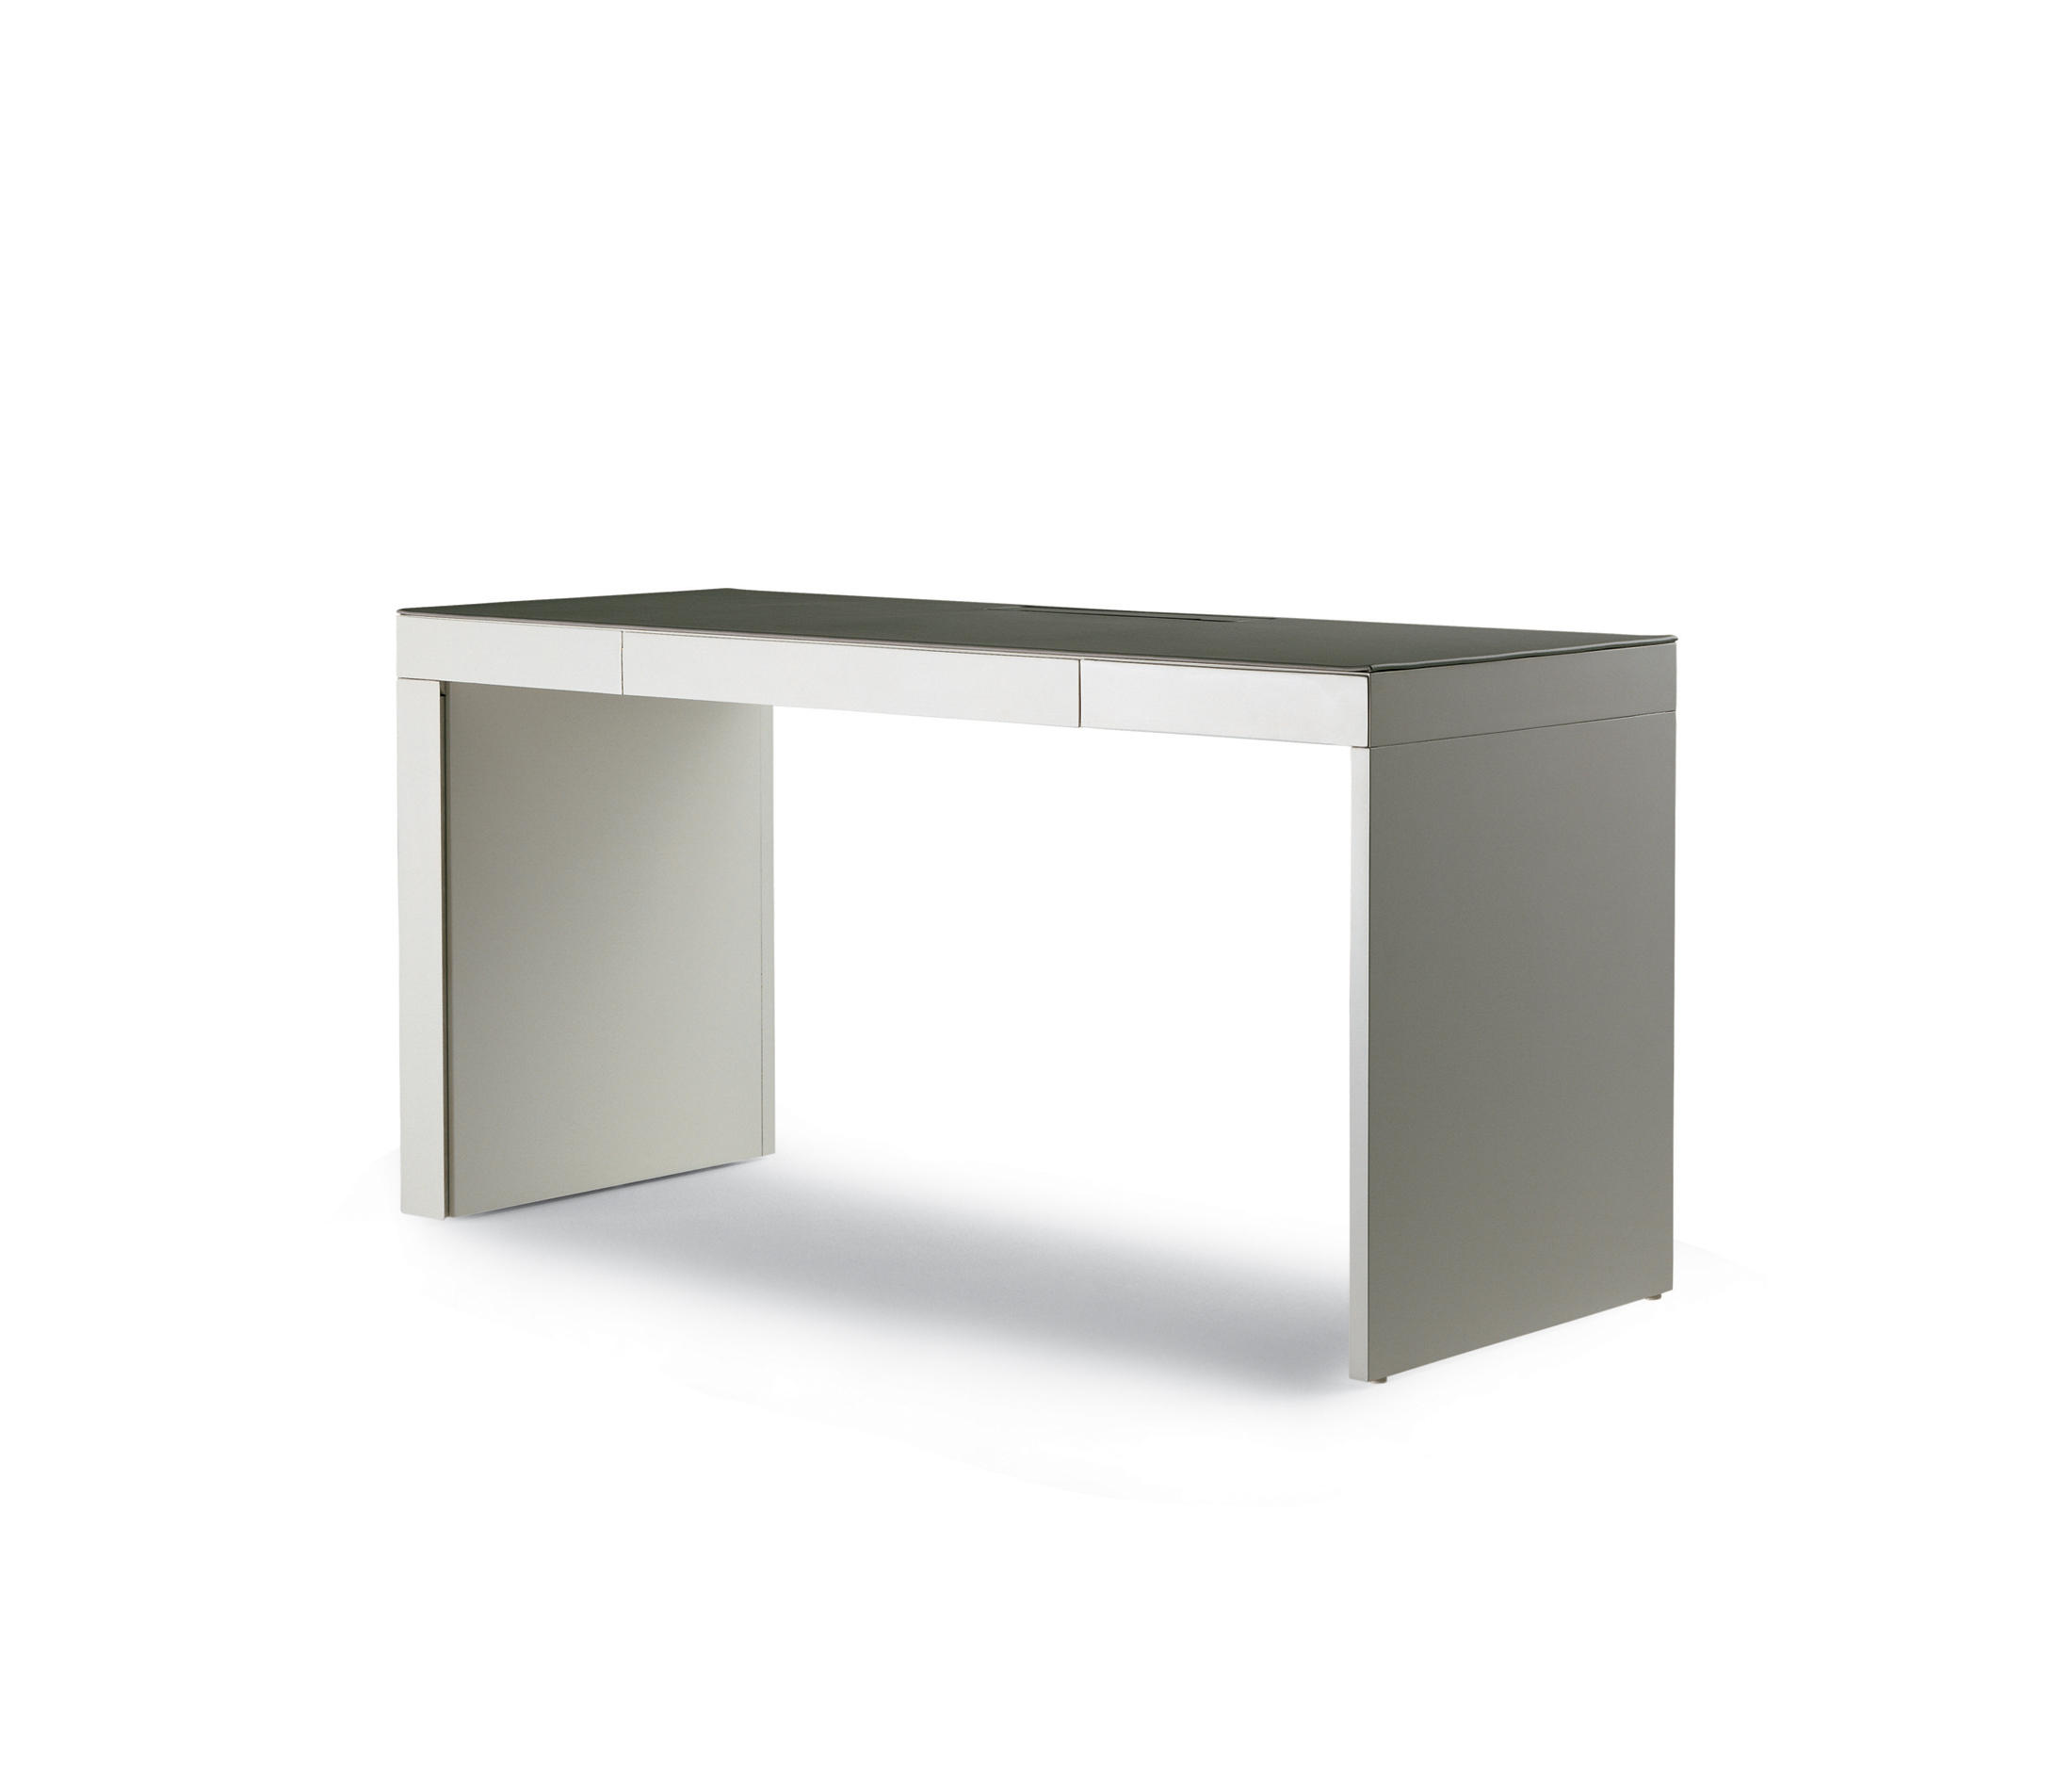 Segreto Poltrona Frau.Segreto Desks From Poltrona Frau Architonic